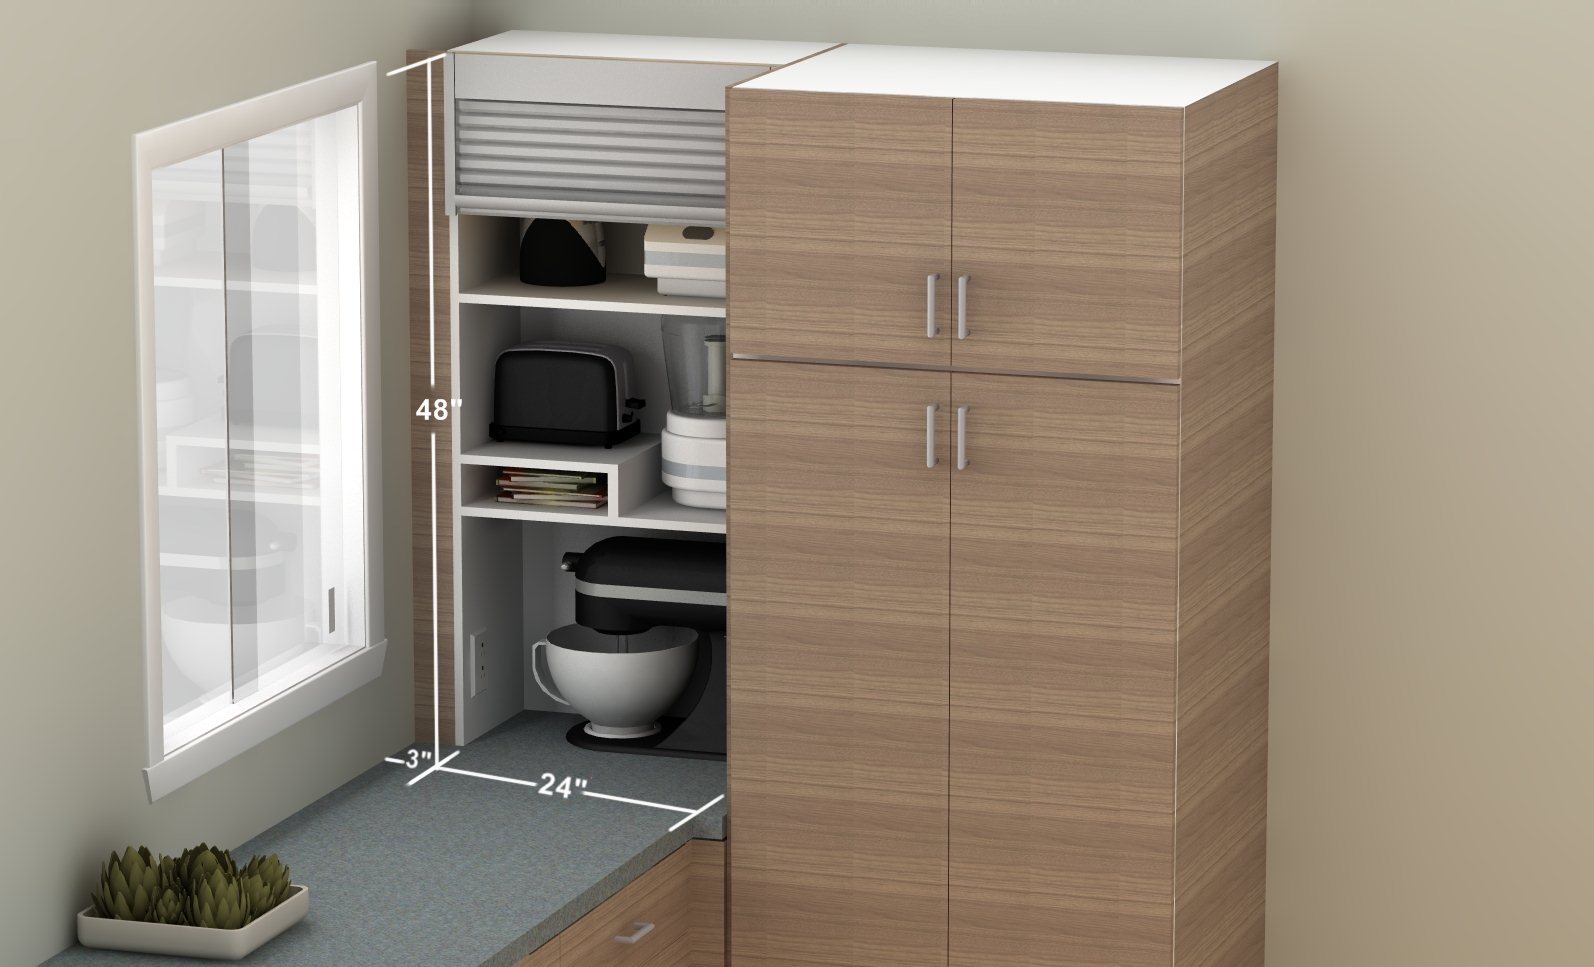 Ikea Küche Rollladenschrank How To Hide Smaller Appliances In Your Ikea Kitchen